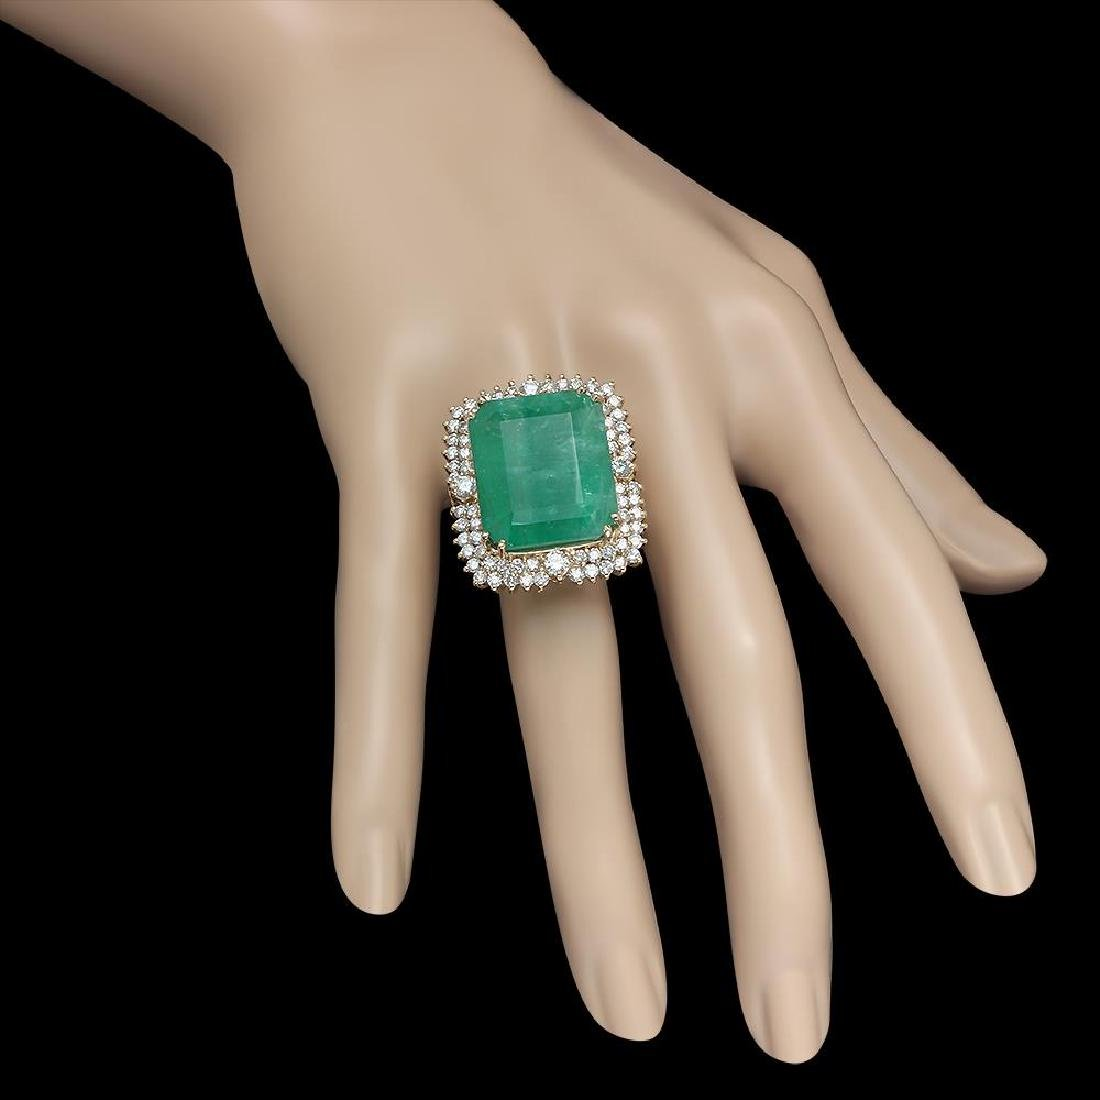 14K Gold 29.27 Emerald 2.52 Diamond Ring - 3